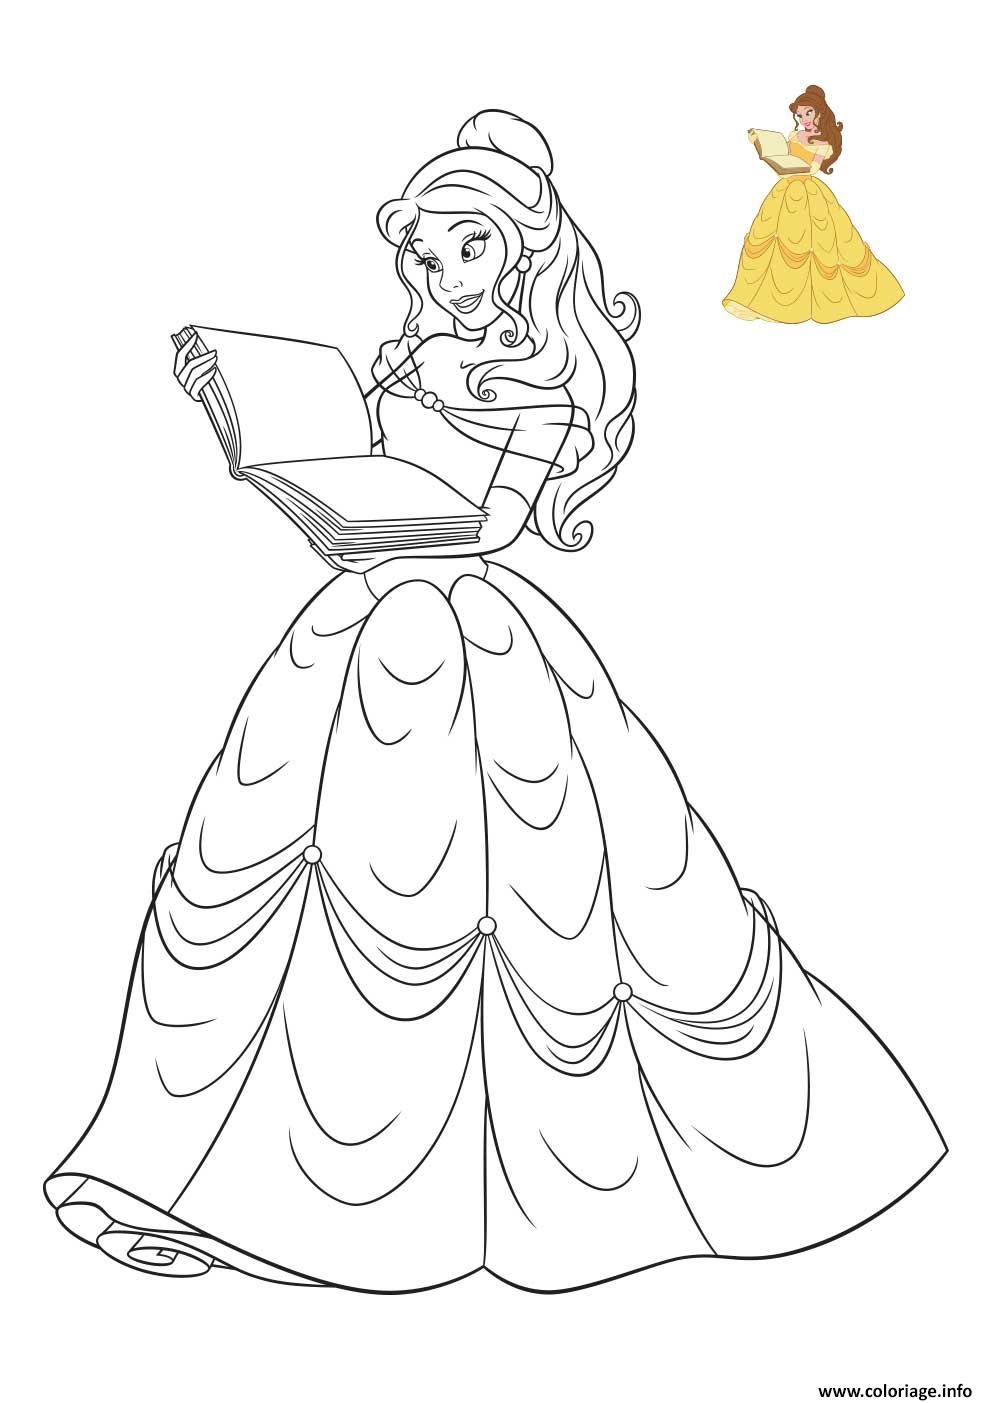 Coloriage princesse disney la belle et la bete - Coloriage disney ...